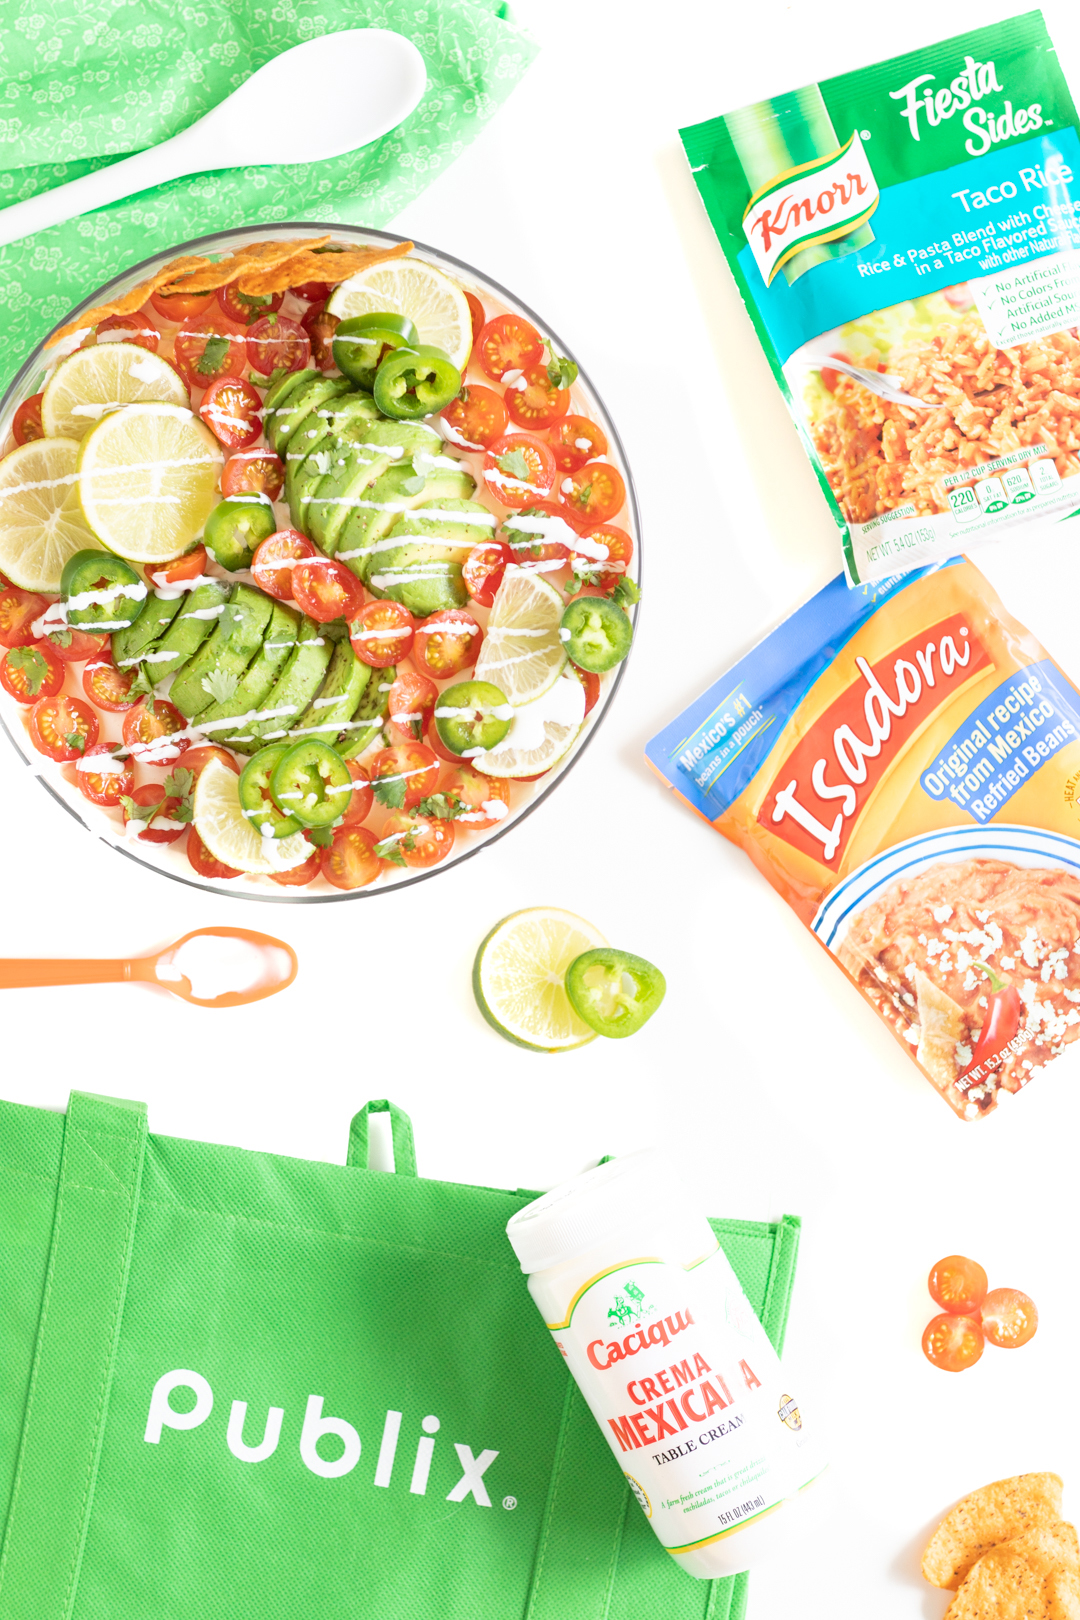 Publix reusable shopping bag, layered Mexican salad in a bowl, Knorr Sides Rice Packet and spoon.